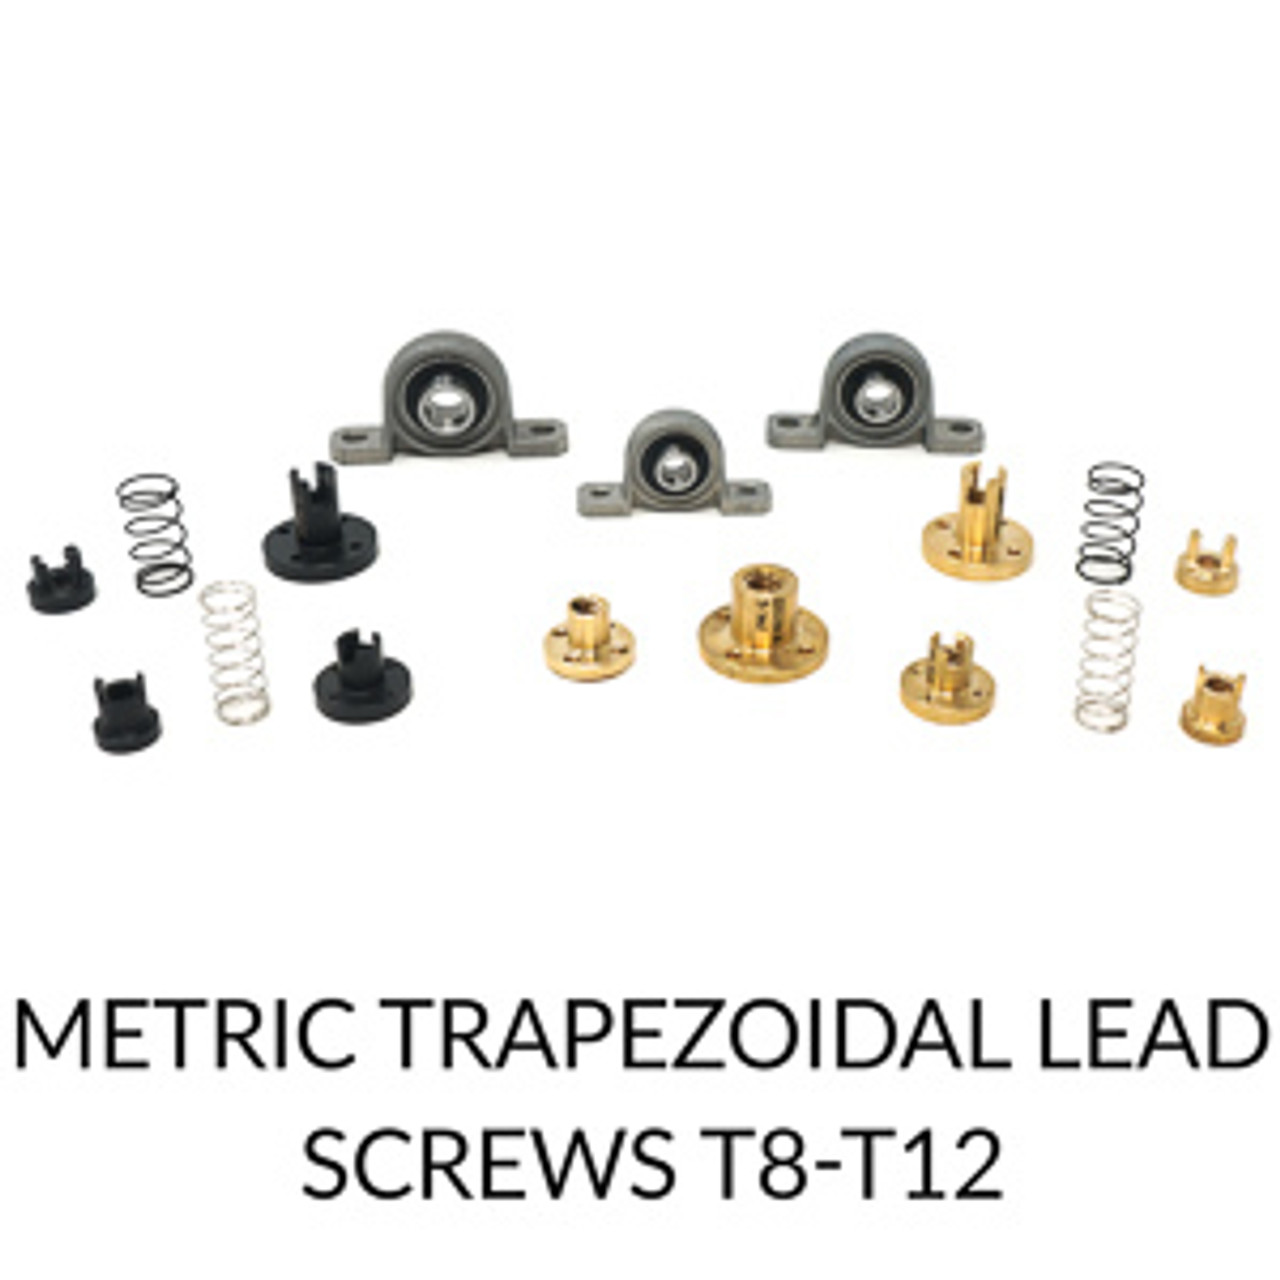 Metric Trapezoidal Lead Screws T8-T12